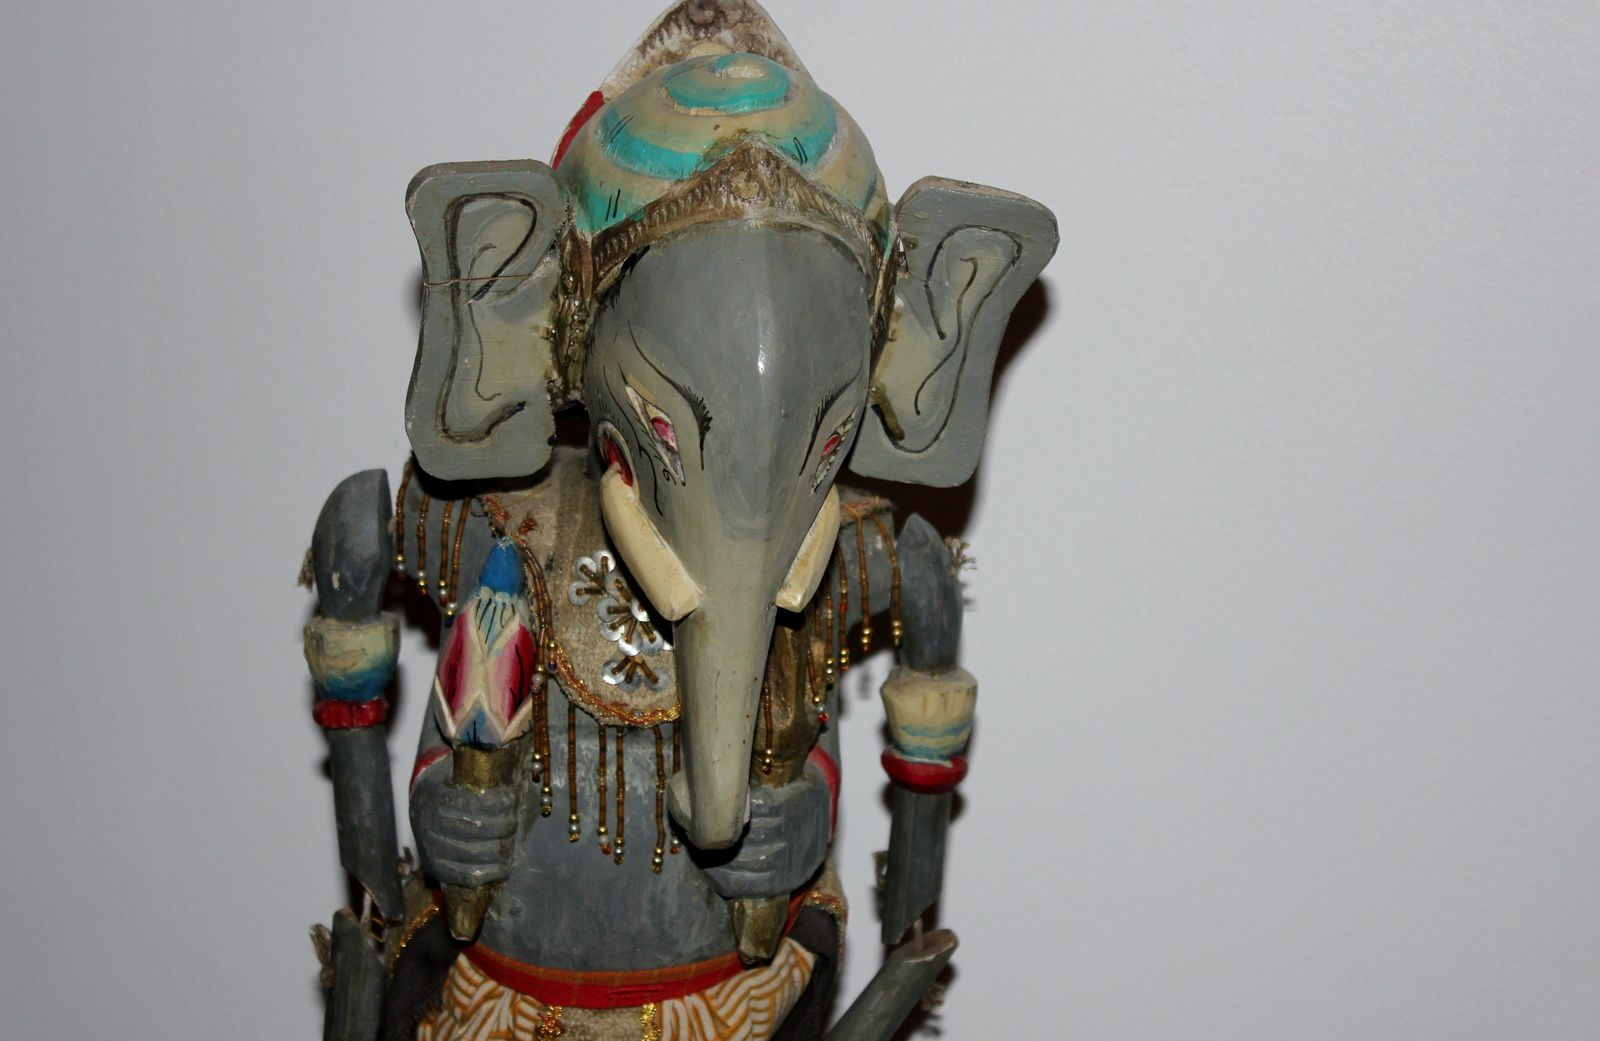 Quelques photos du Ganesh à double visage....